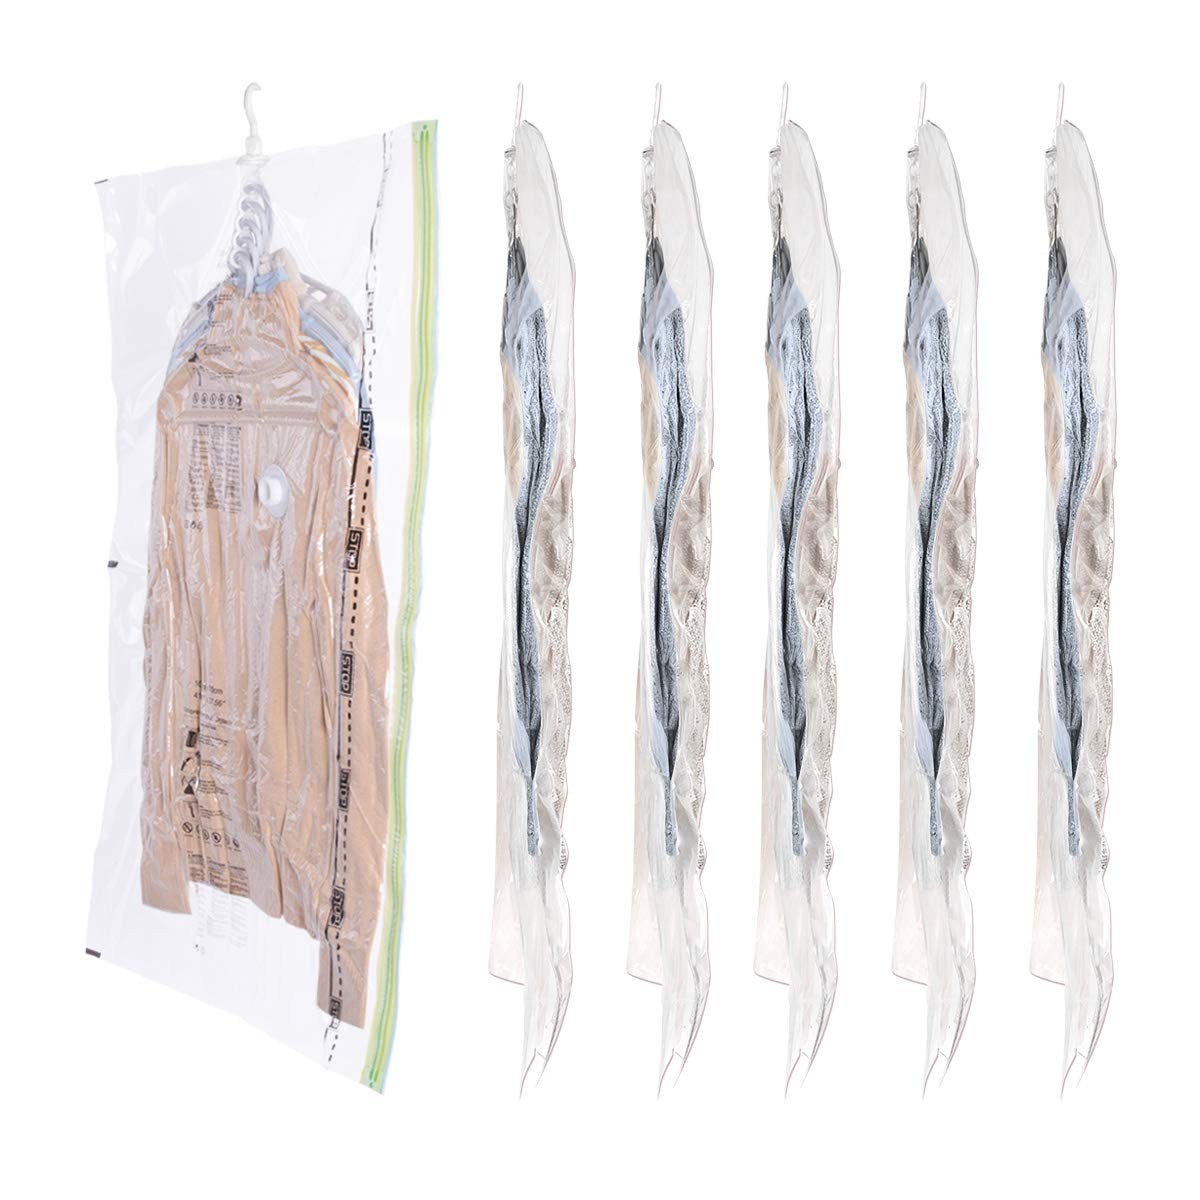 Hi Storage Hanging Vacuum Storage 6 Pack Space Saver Bags (L Size 41.3 x 27.6 inches) 5 Cascading Hanger, Garment Protect Save 80% Storage Space Closet Organizer for Any Clothes by Hi Storage